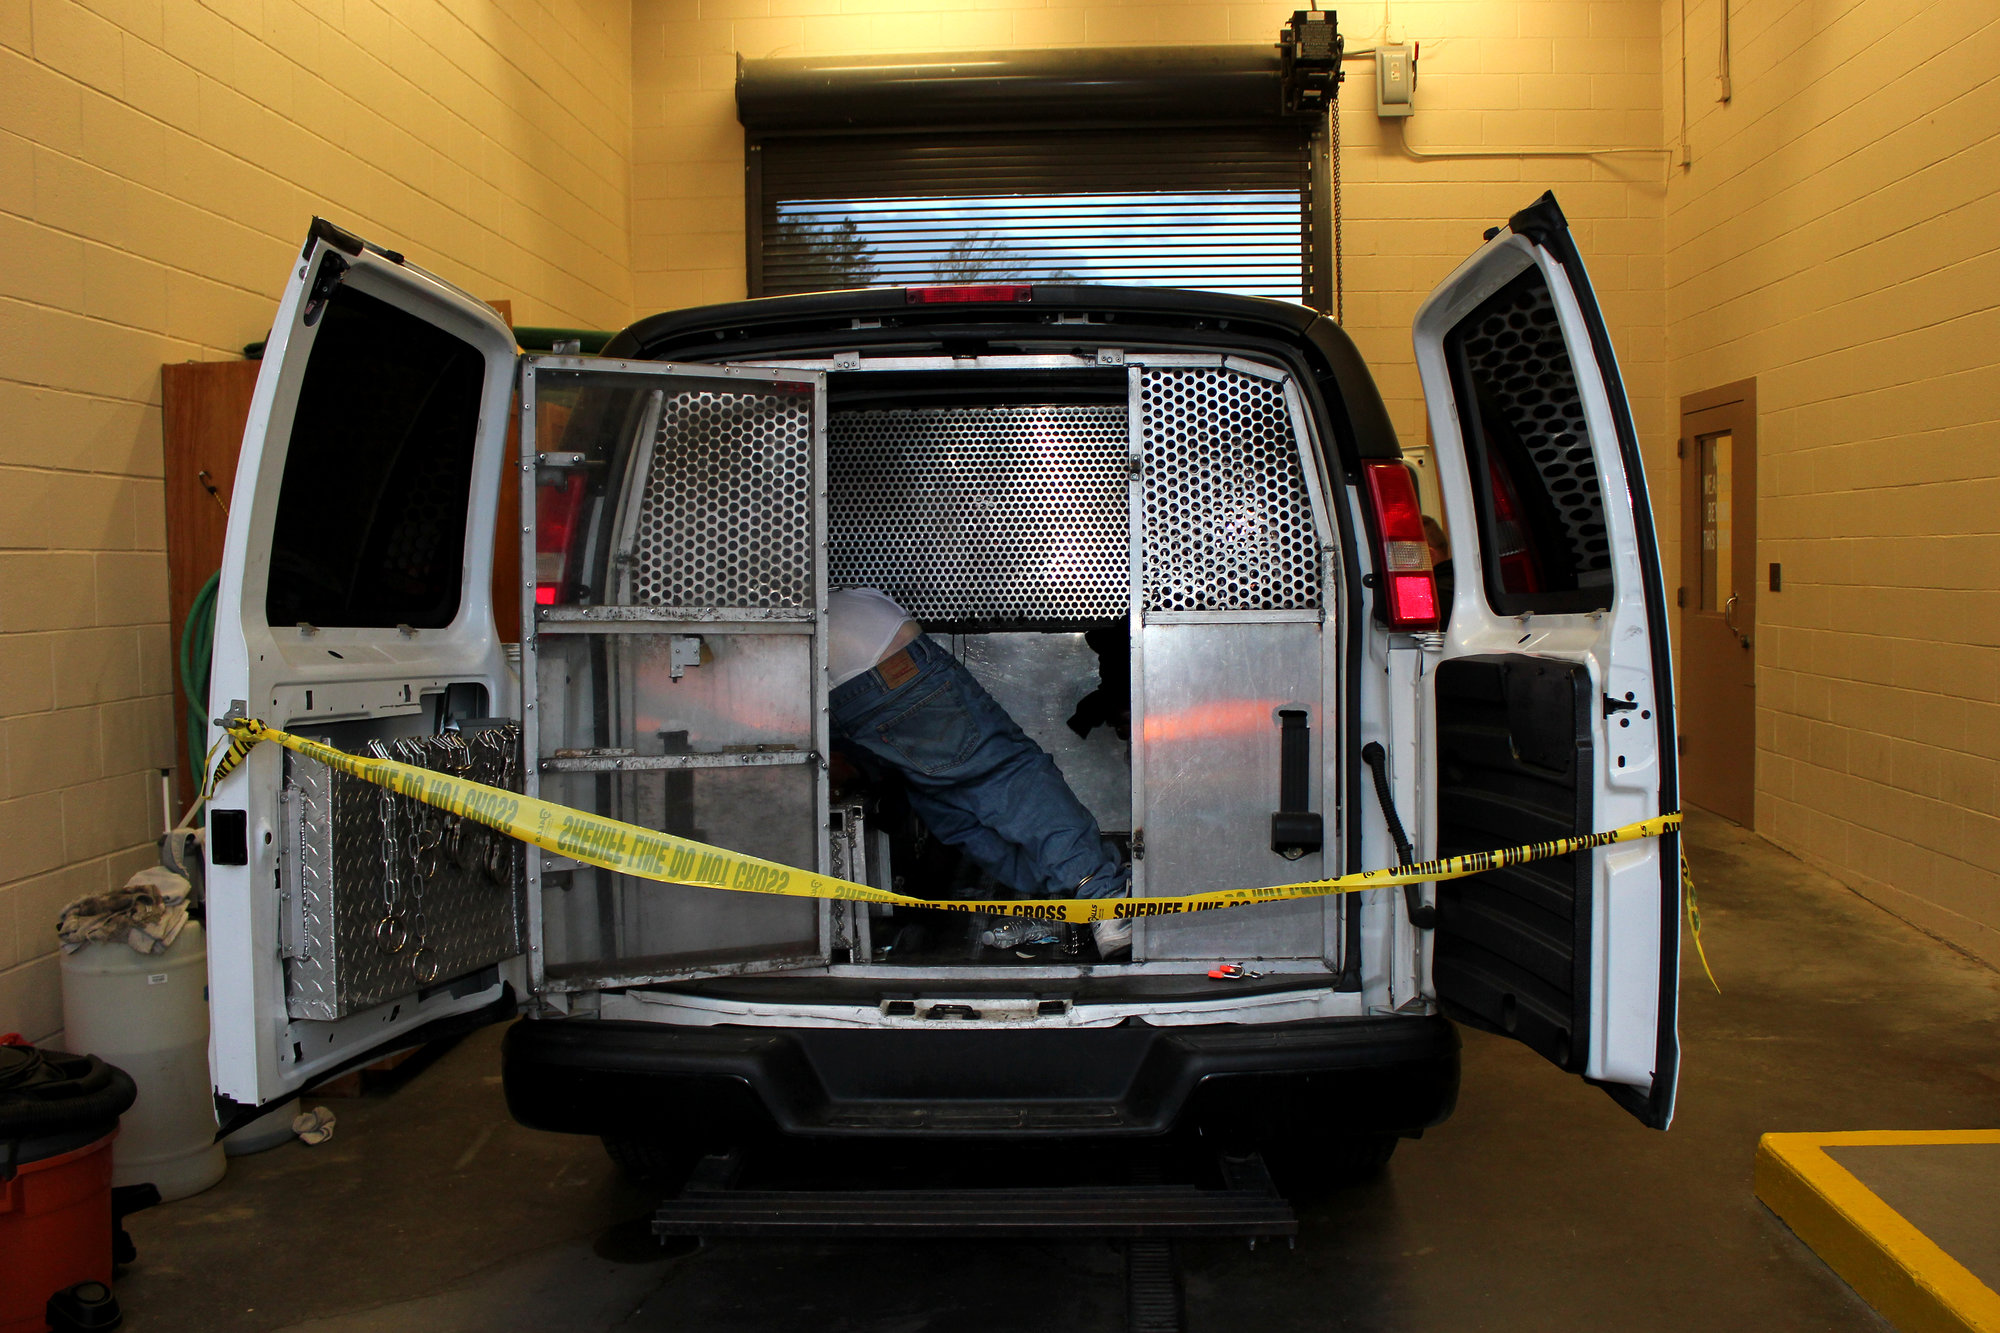 Inside the Deadly World of Private Prisoner Transport | The